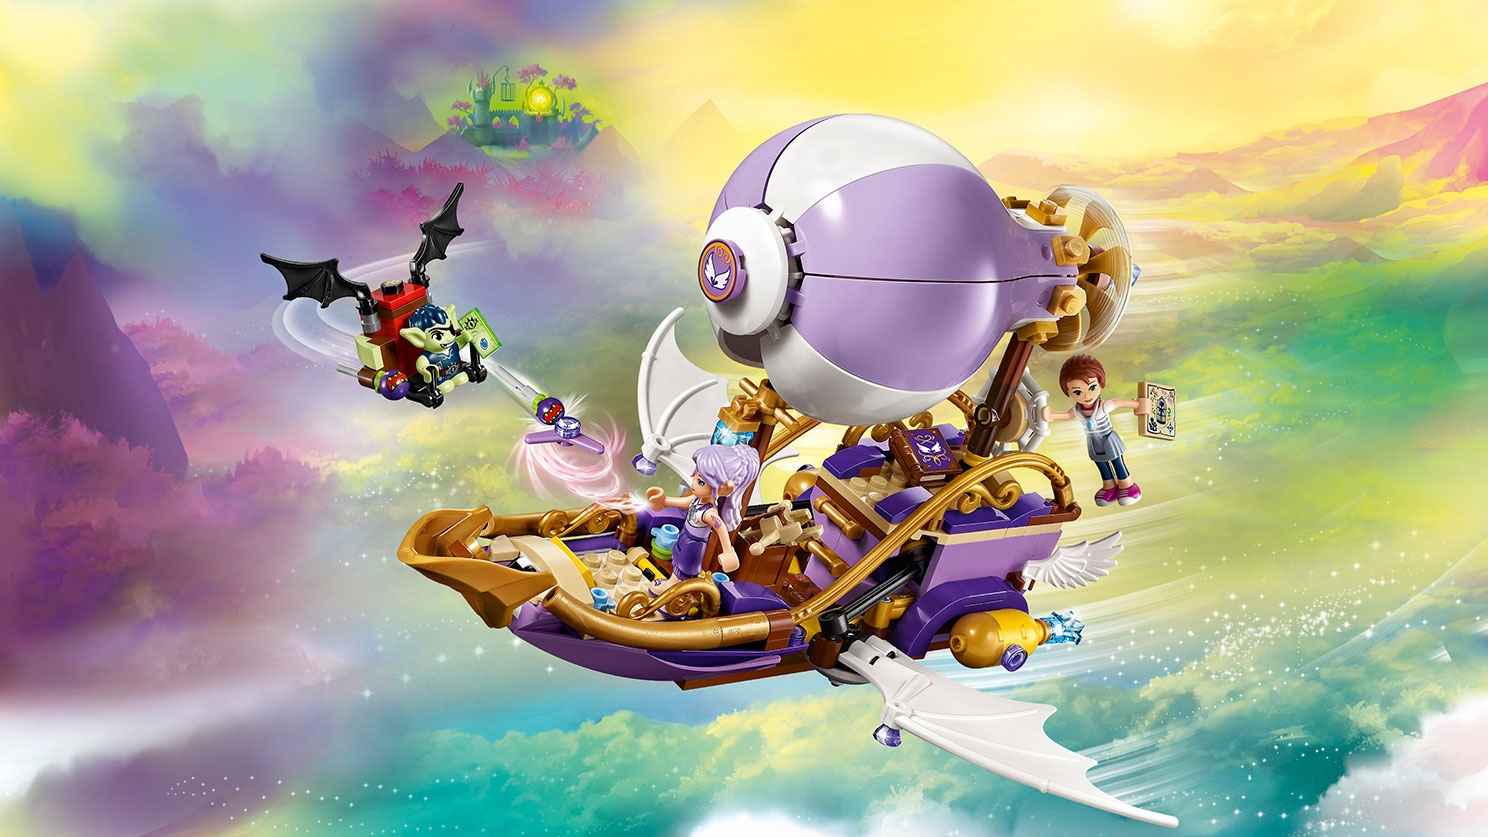 LEGO Elves - 41186 Azari & the Goblin Forest Escape - The Goblin has spotted Emily Jones with her amulet on Aira's airship and swoops in with the goblin glider to steal the amulet.